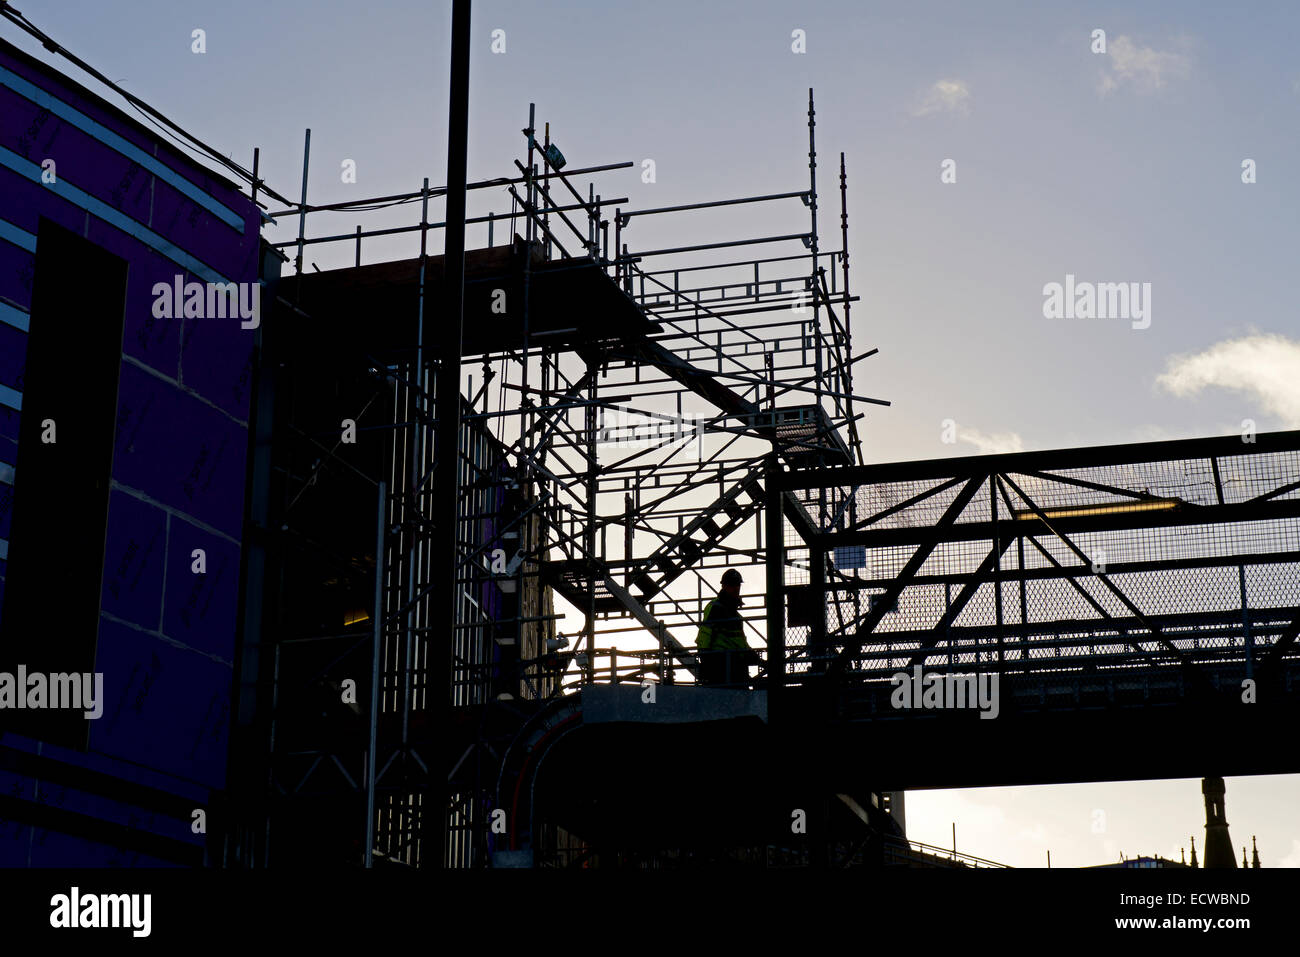 The Broadway shopping centre being built, Bradford, West Yorkshire, England UK - Stock Image